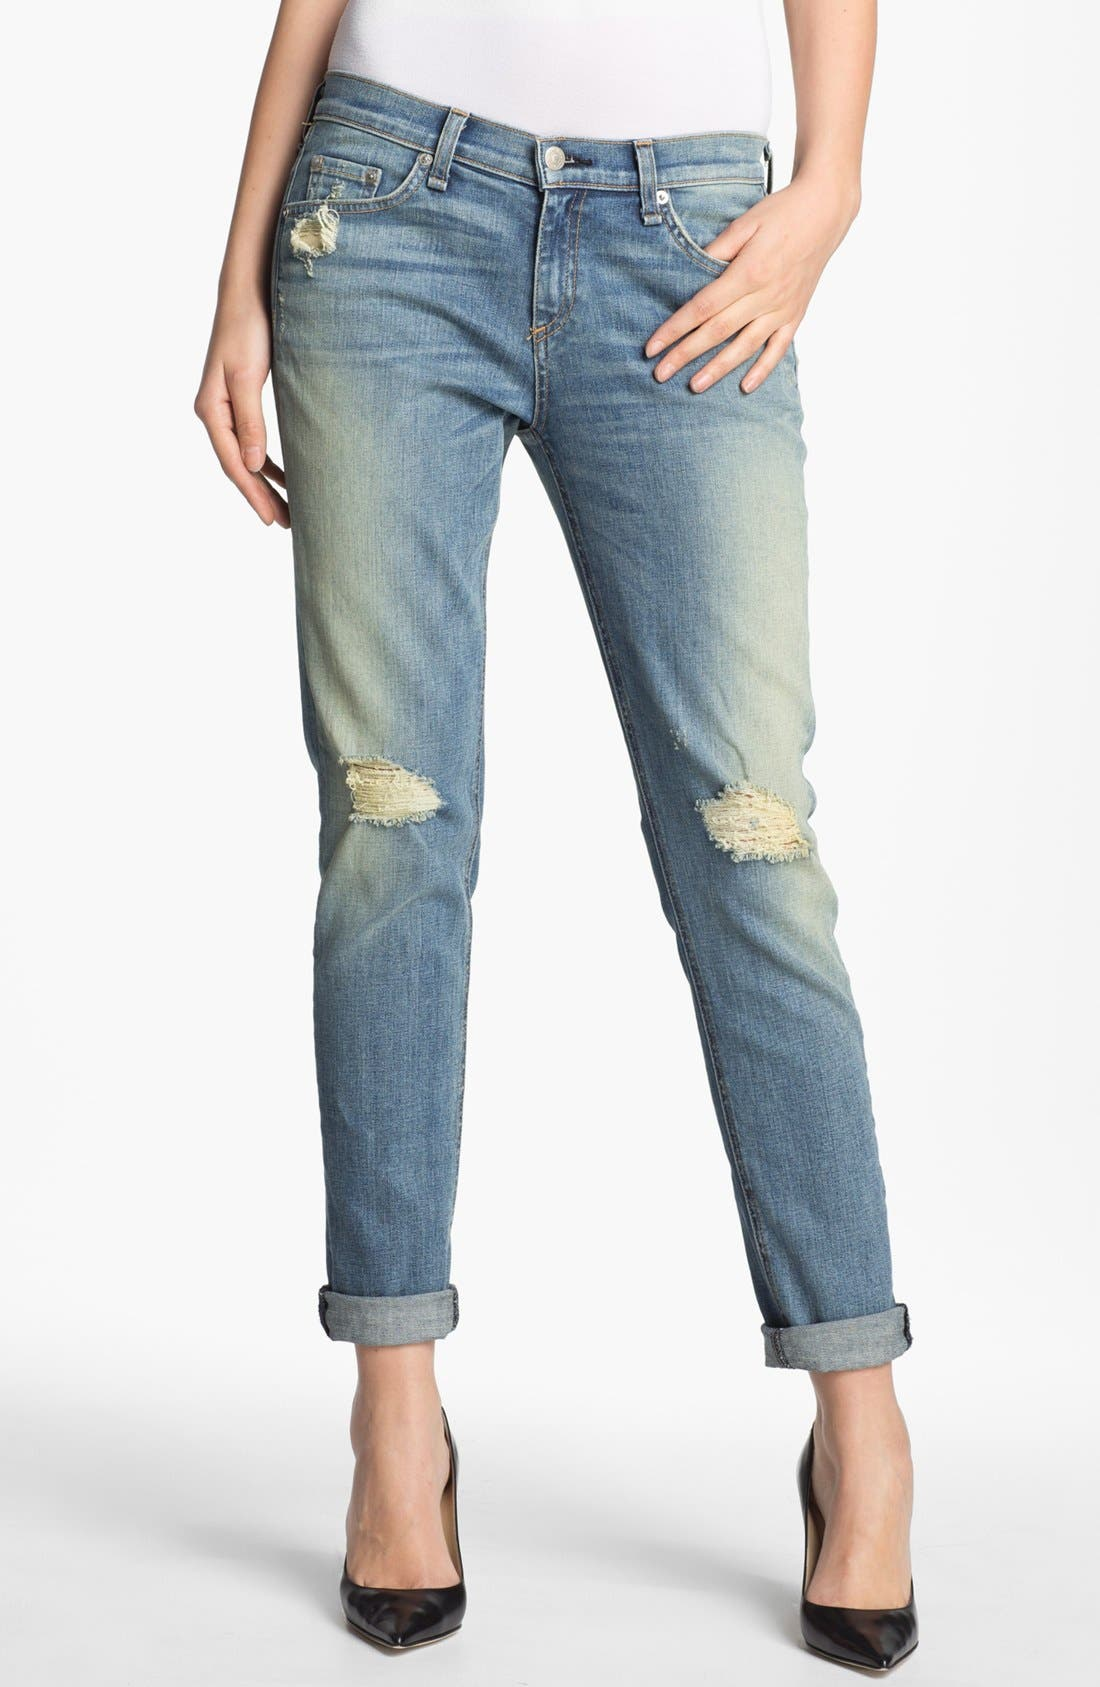 Alternate Image 1 Selected - rag & bone 'The Dash' Slouchy Fit Jeans